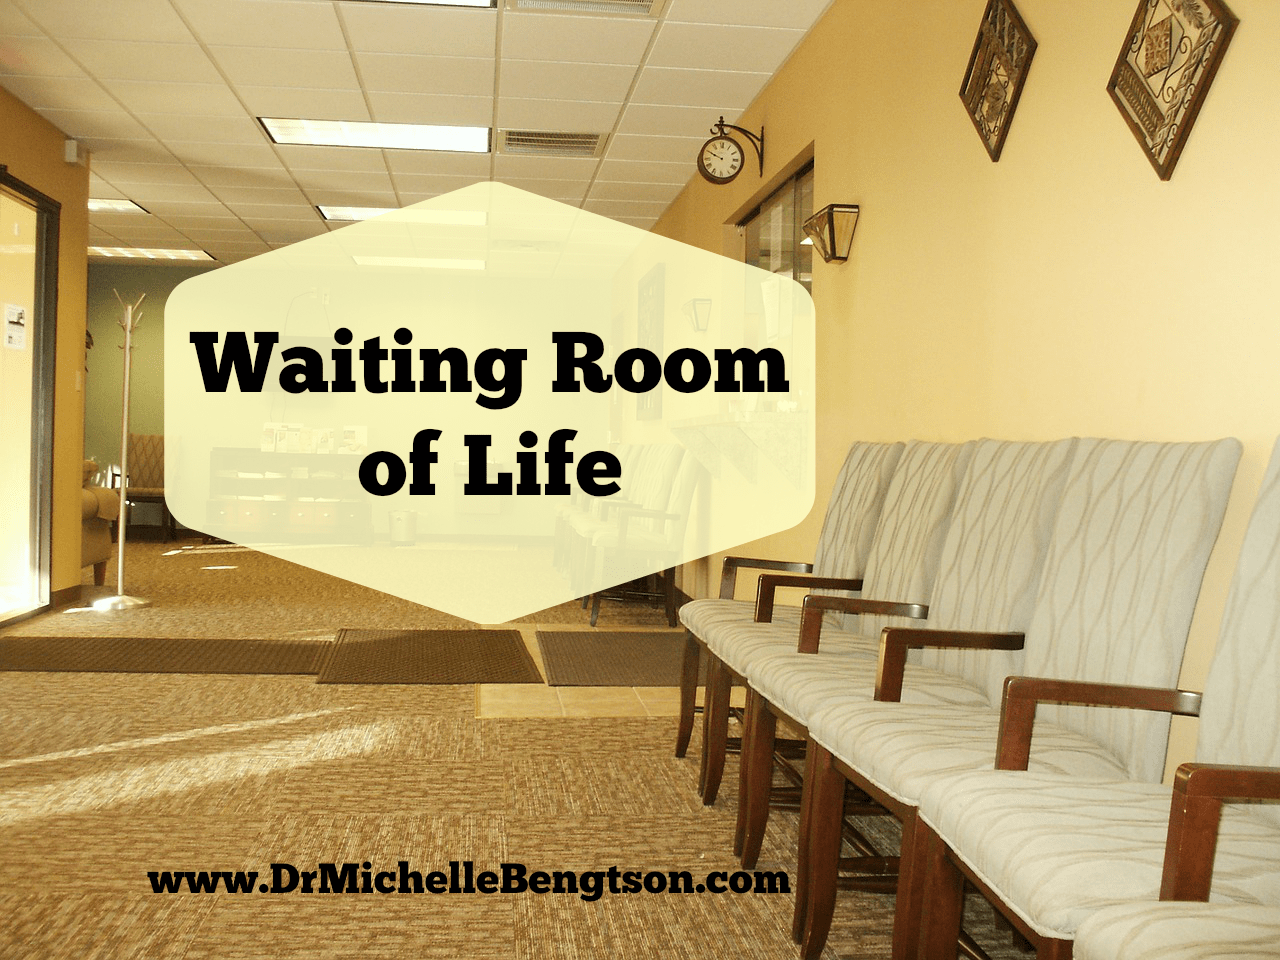 Waiting Room of Life